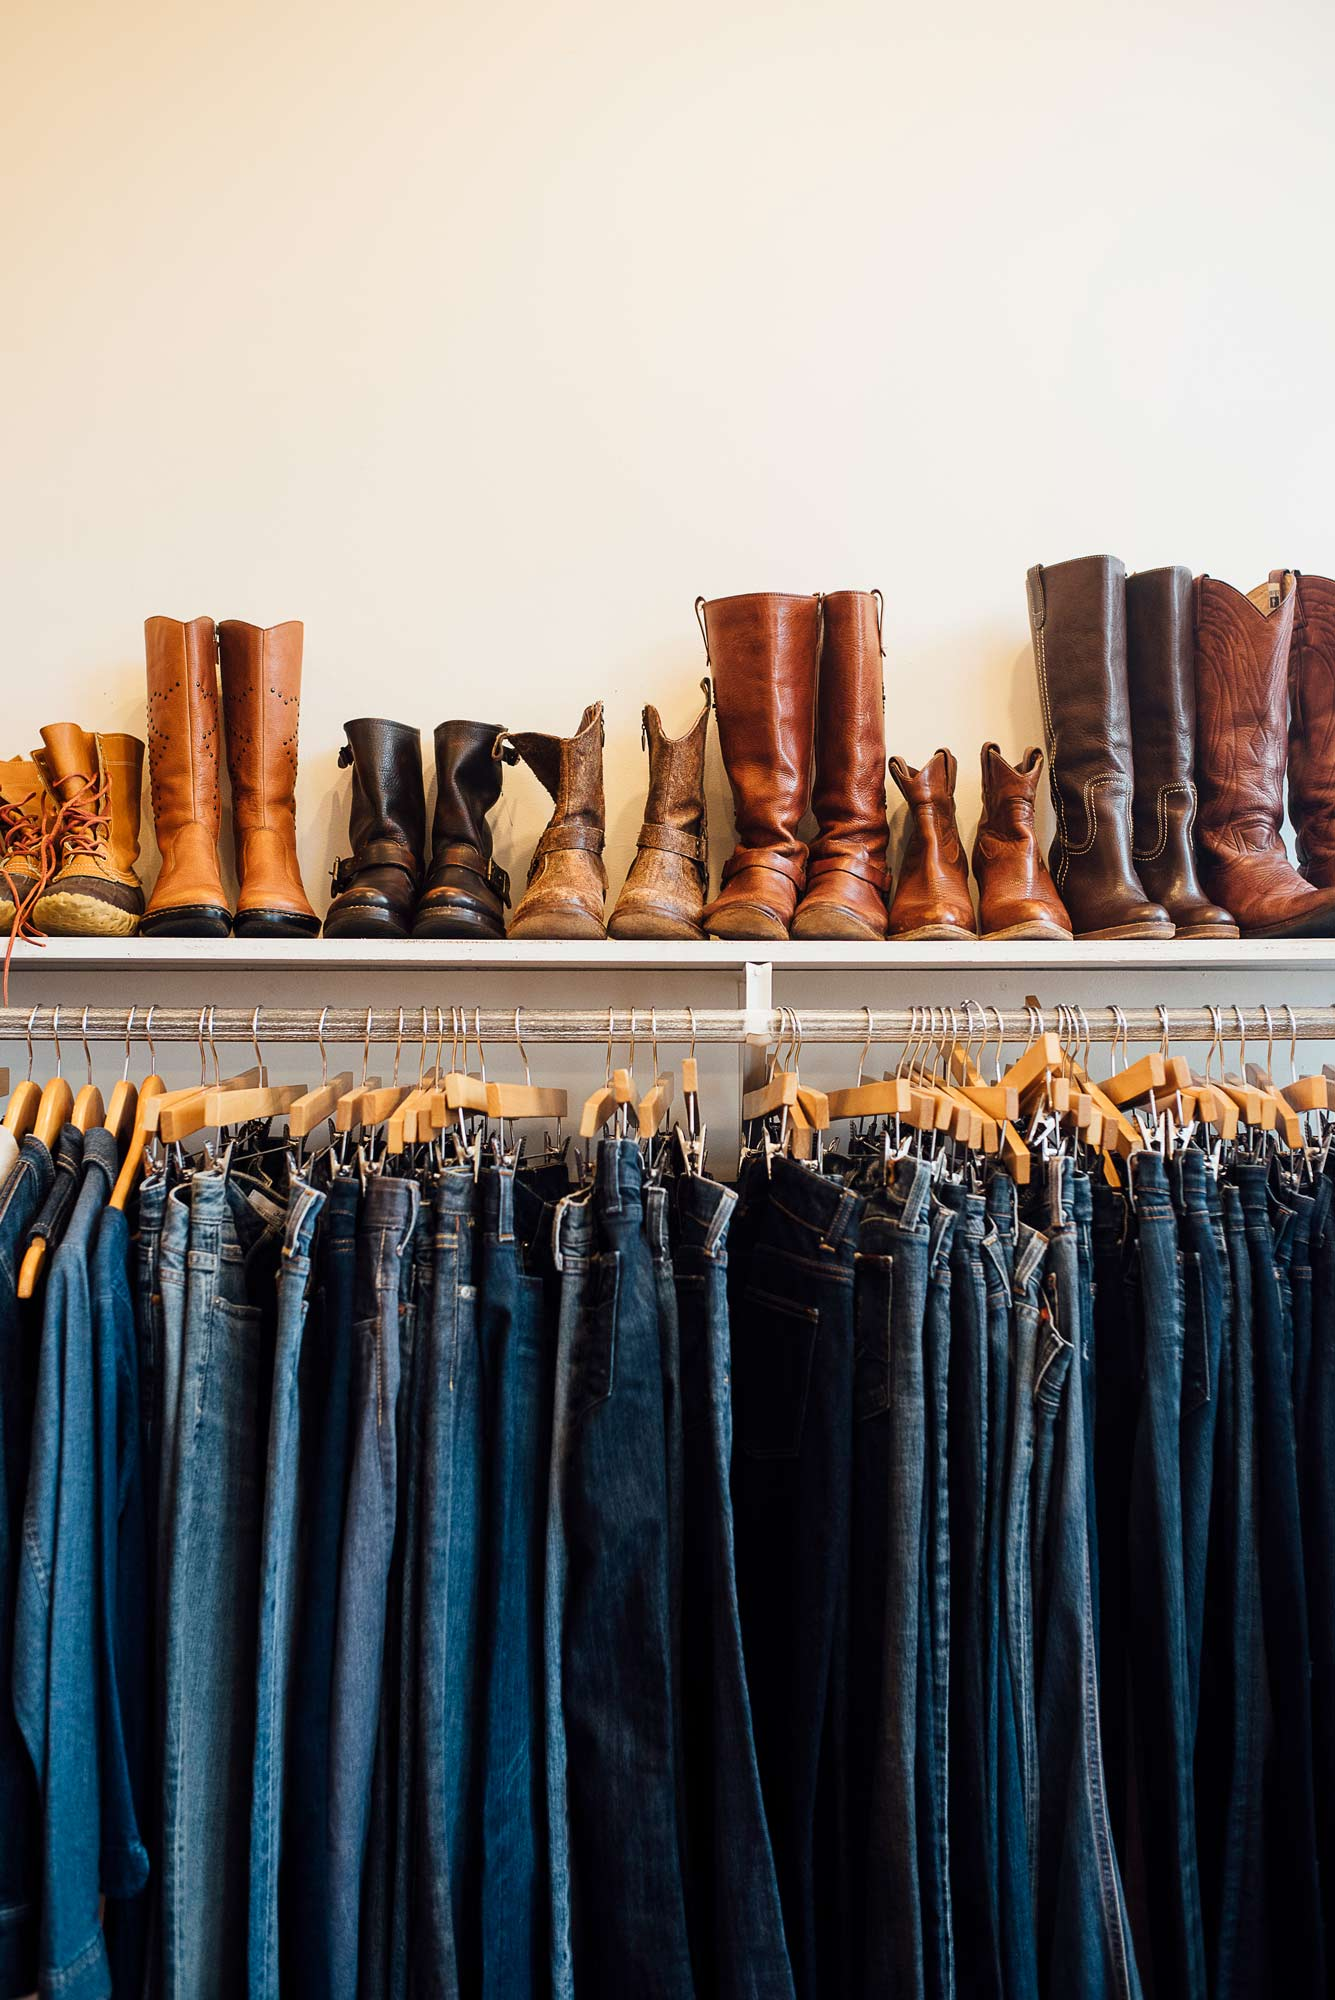 A treasure trove of jeans and boots among the stylish selections at Justine Consignment Boutique.